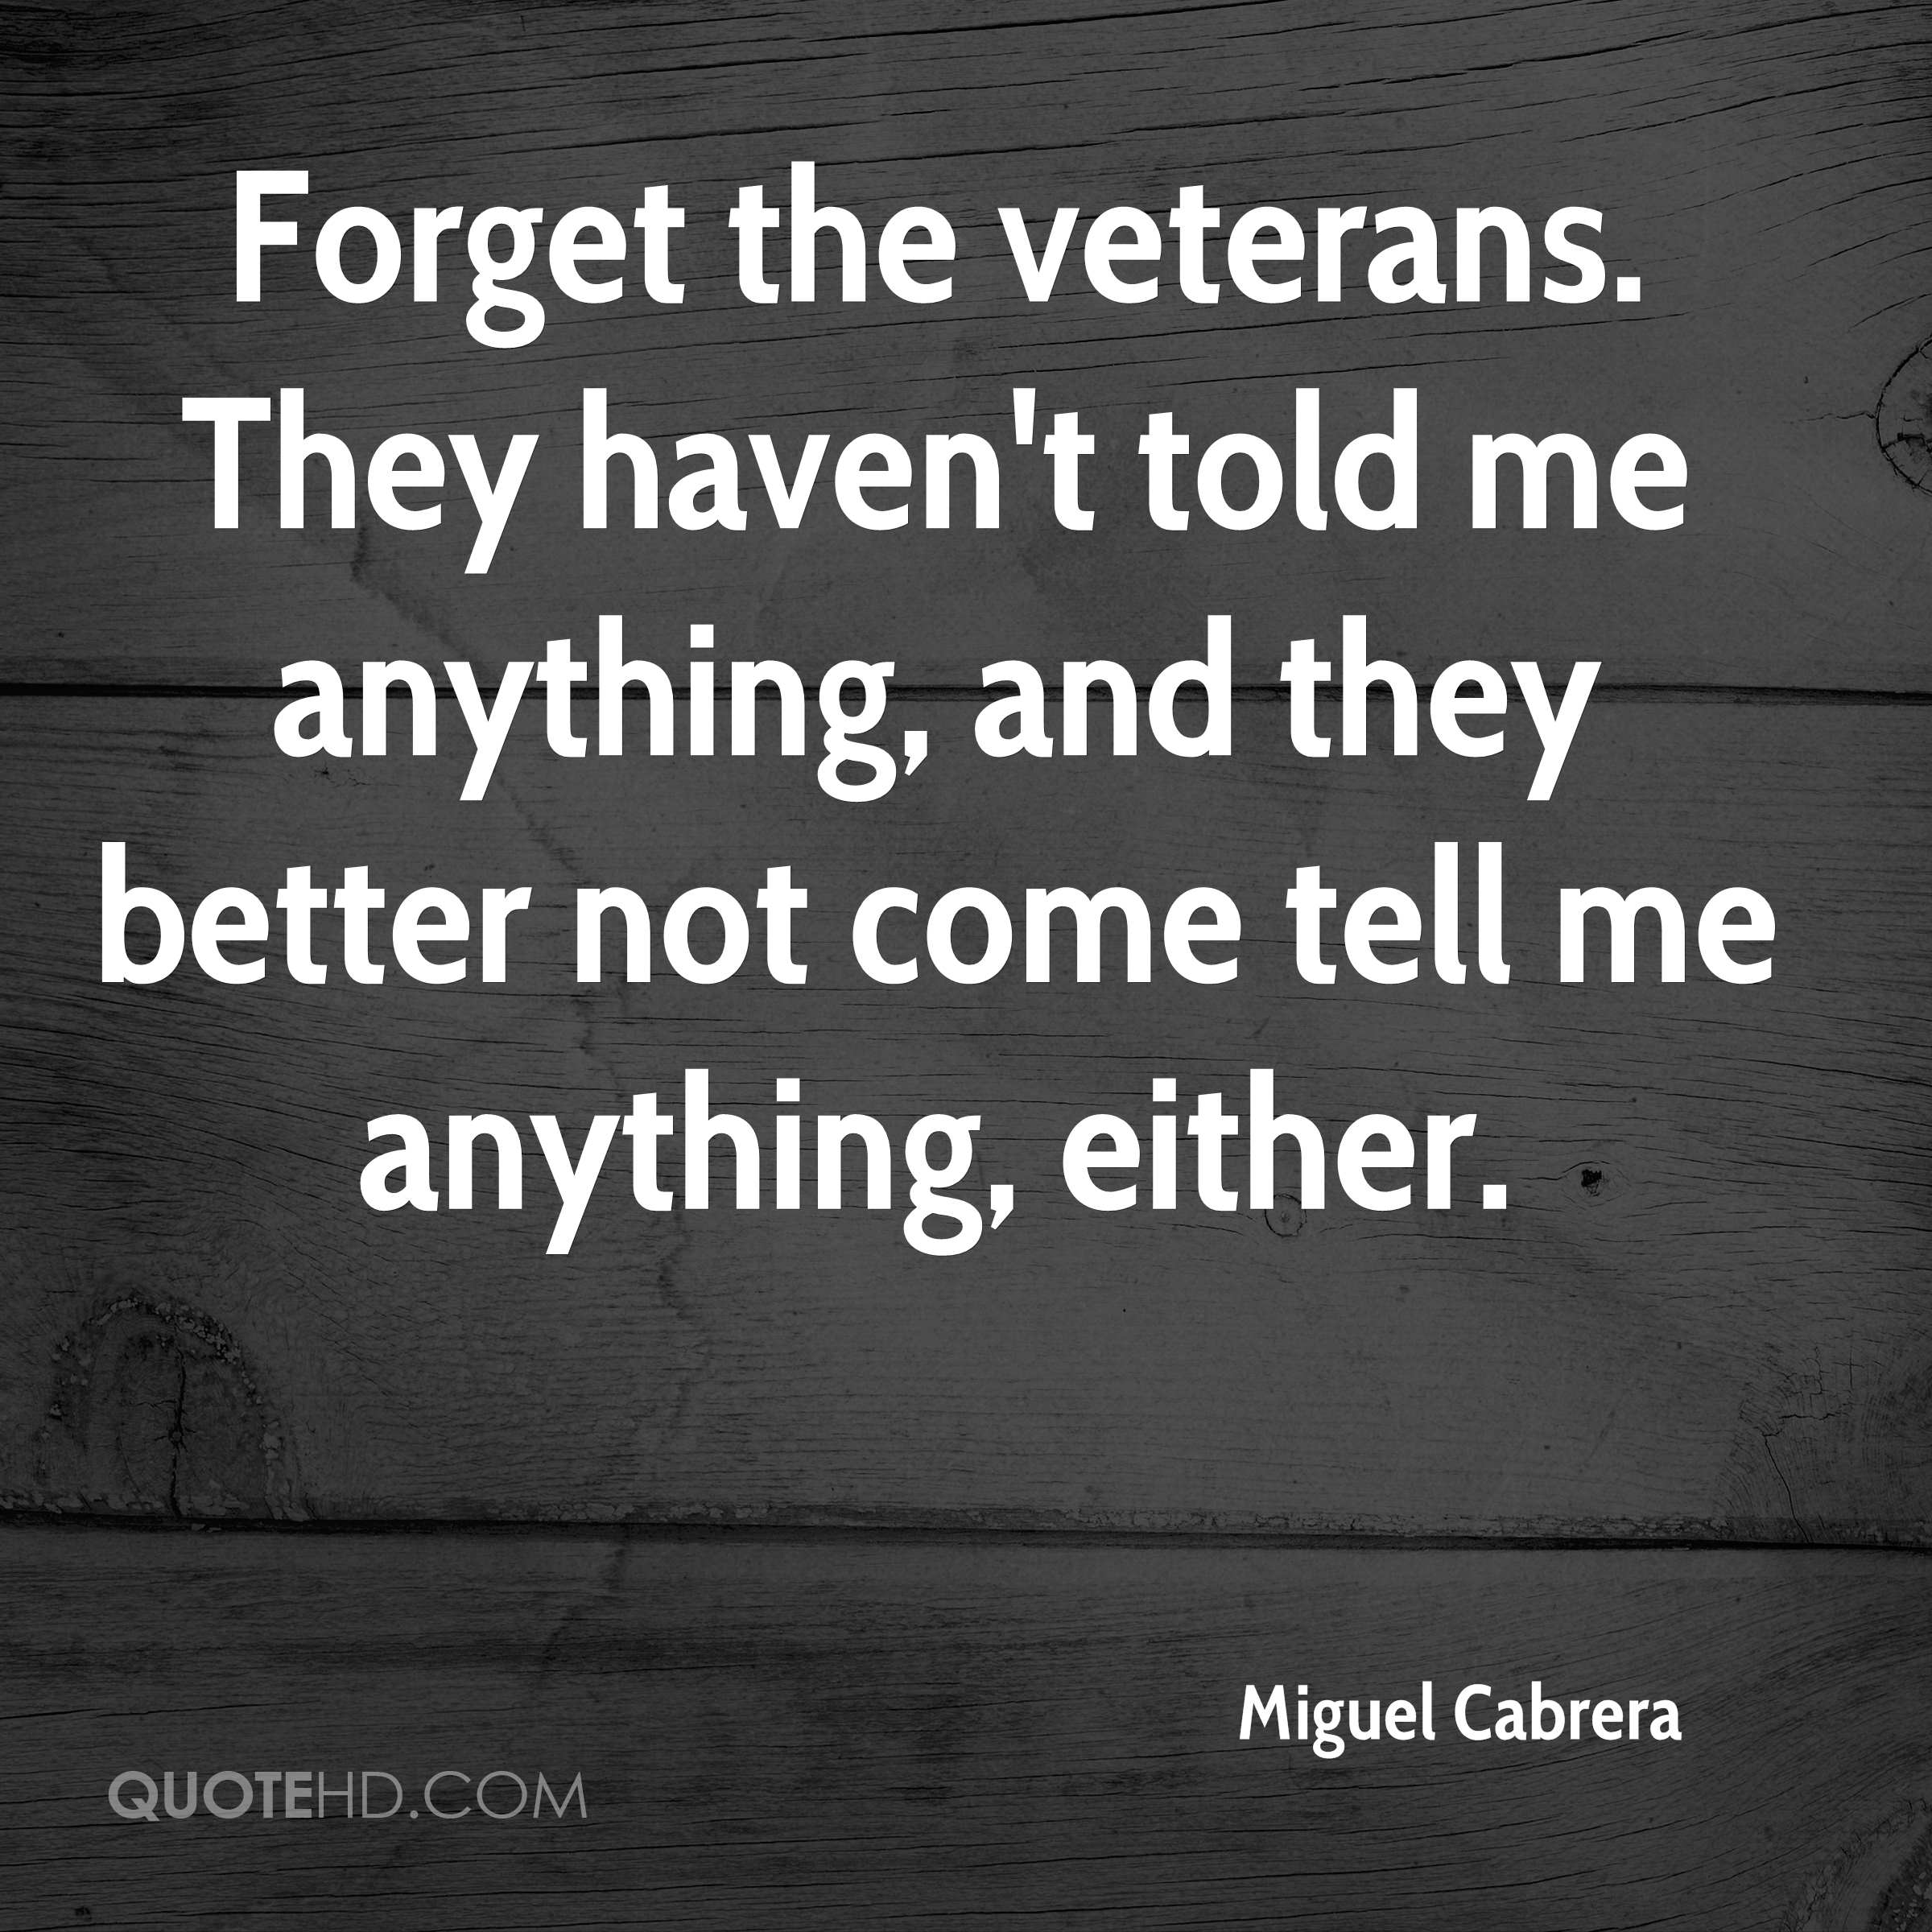 Forget the veterans. They haven't told me anything, and they better not come tell me anything, either.